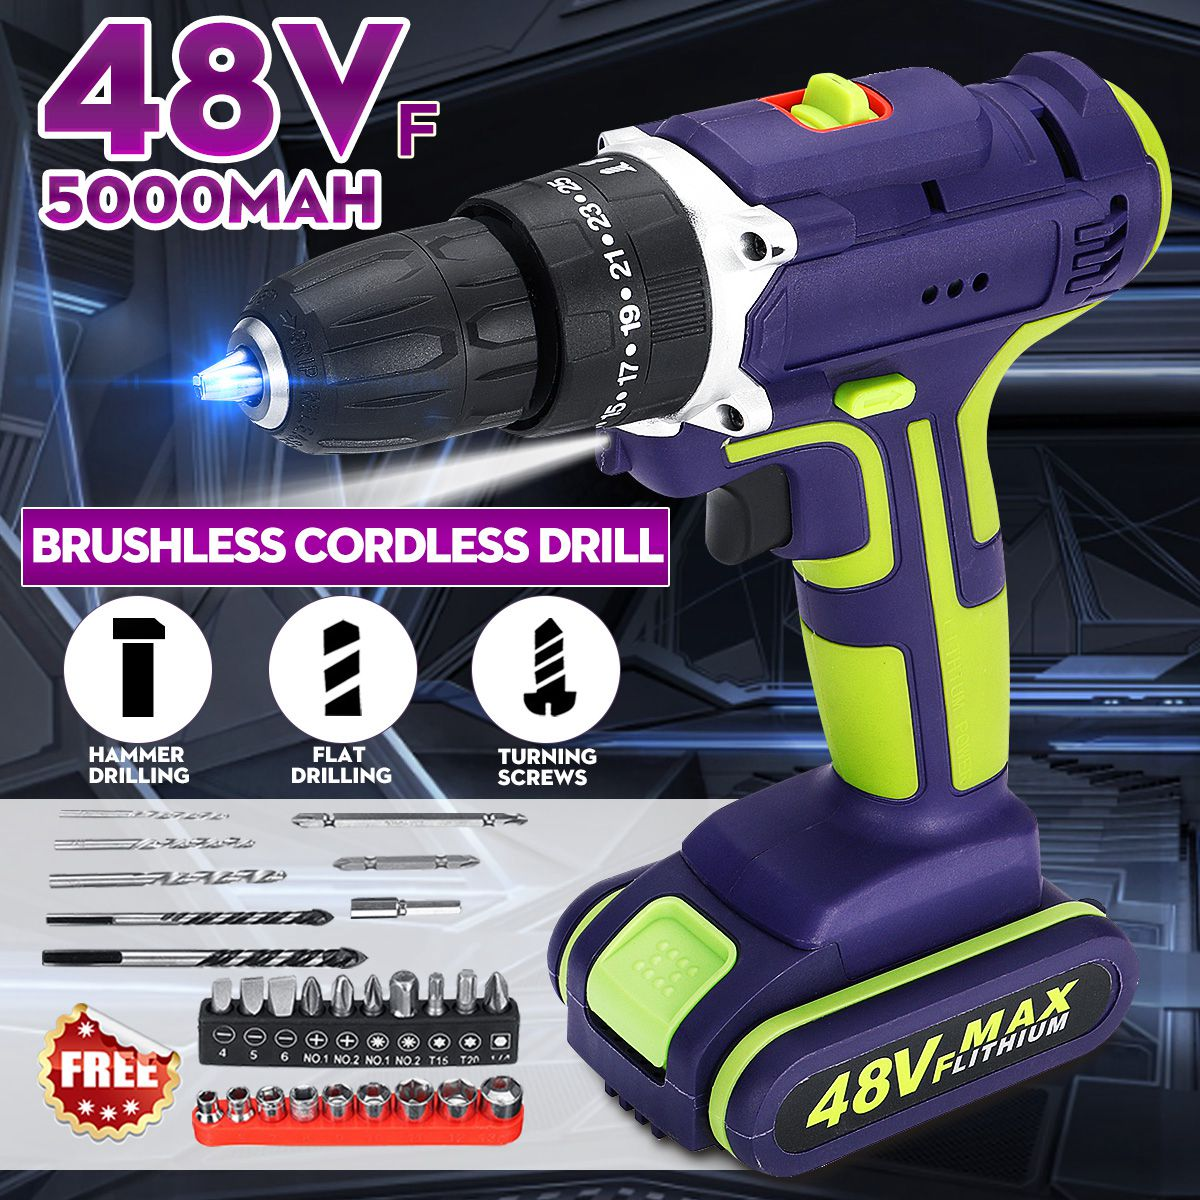 3 In 1 Professional 48V Cordless Drill Daul-Speed Adjustment LED Large Capacity Battery 50Nm 25+1 Torque 28pcs Accessories